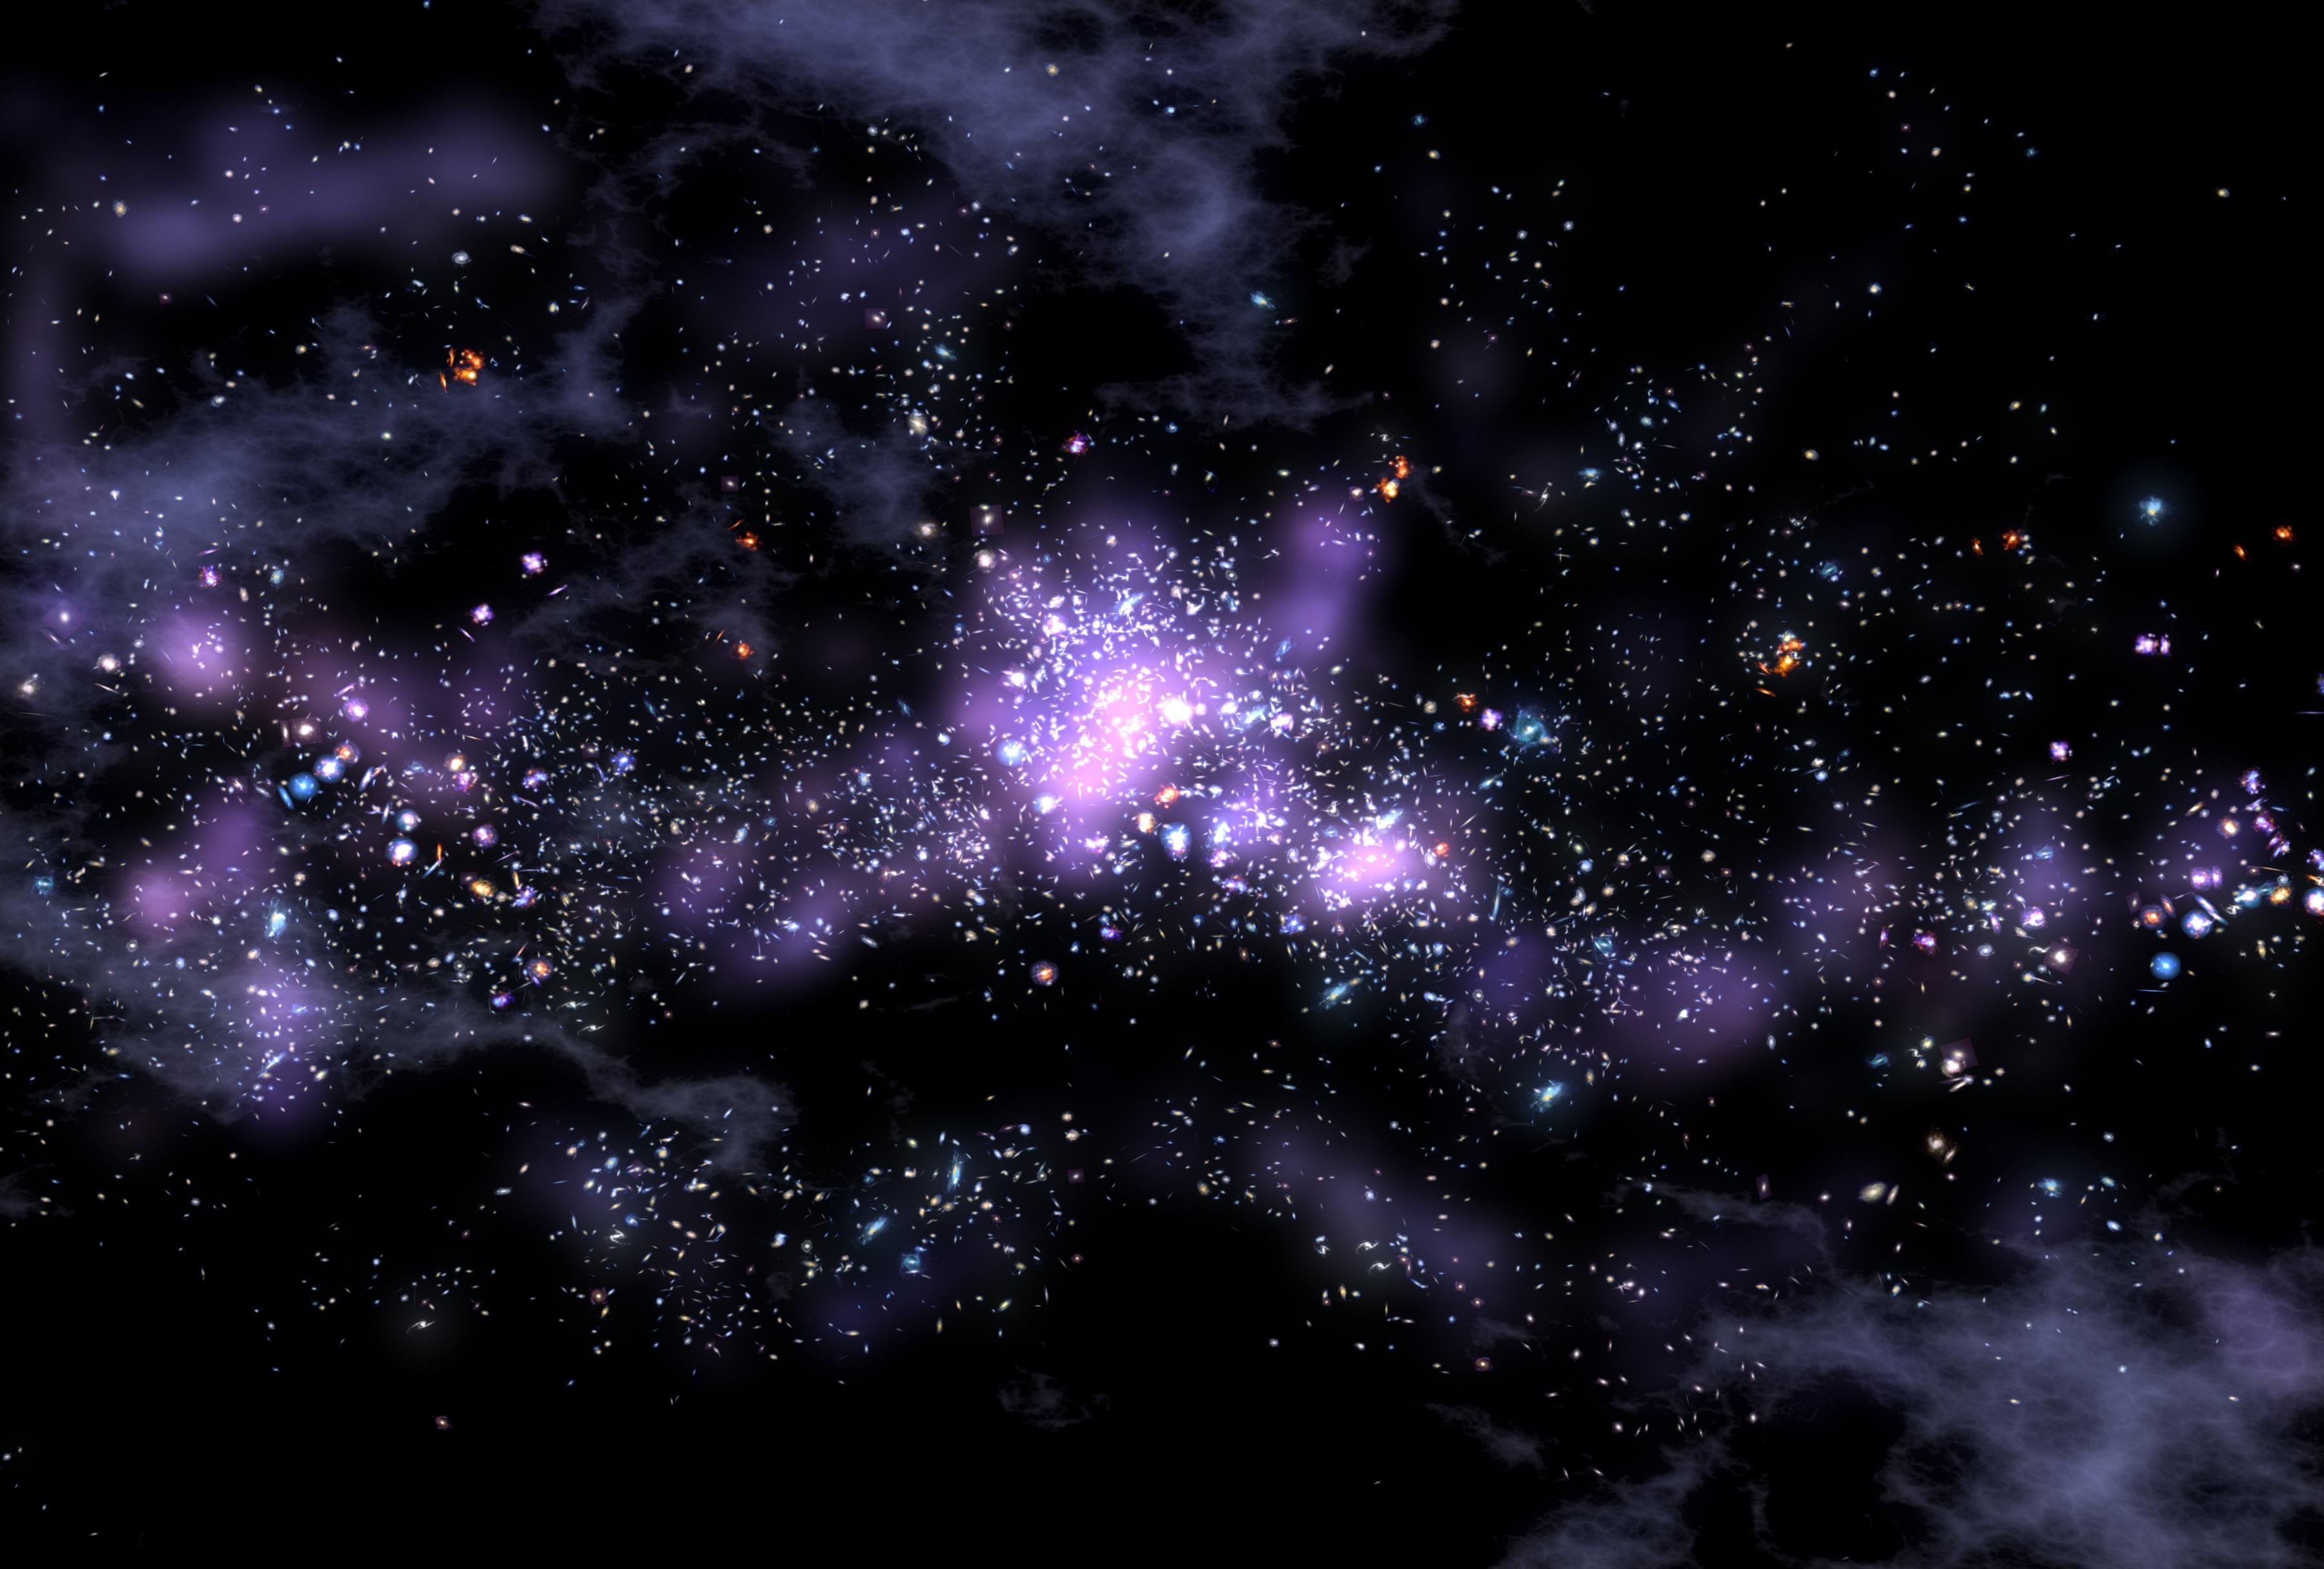 Galaxy Aesthetic Wallpapers Wallpaper Cave